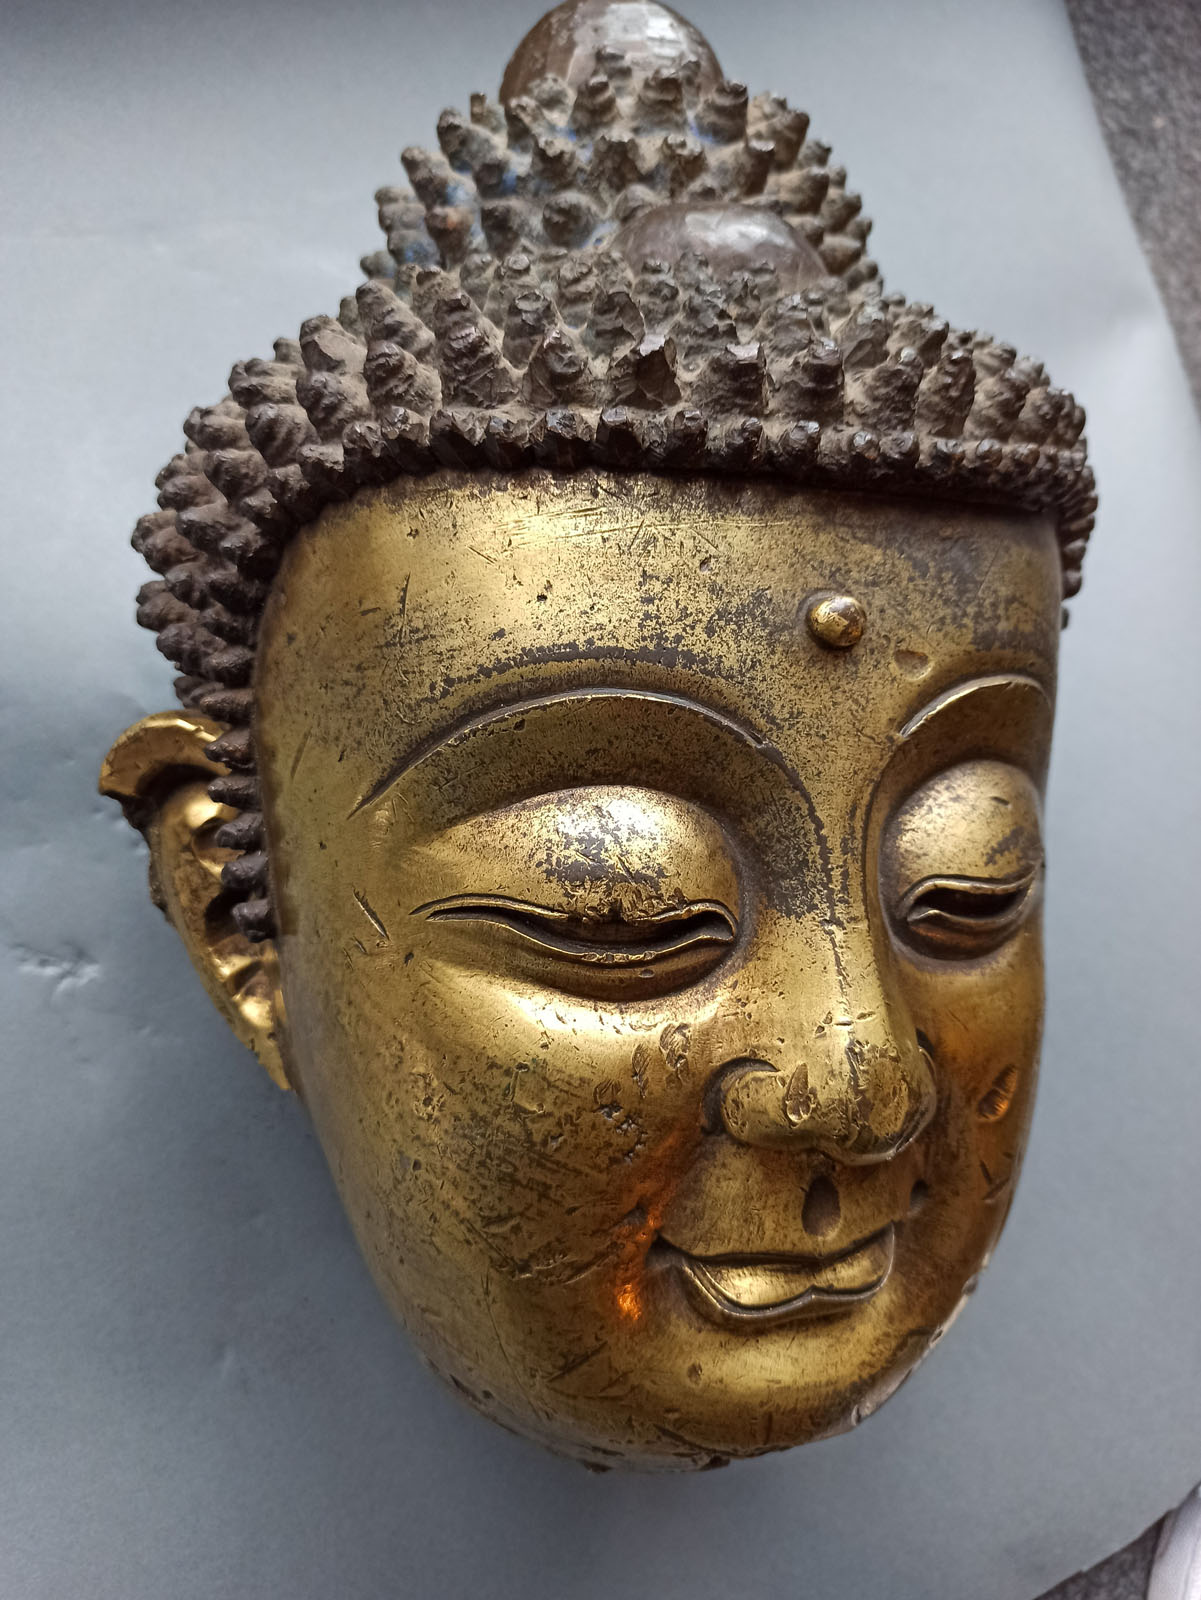 A LARGE GILT-BRONZE HEAD OF BUDDHA ON A WOOD STAND - Image 11 of 13